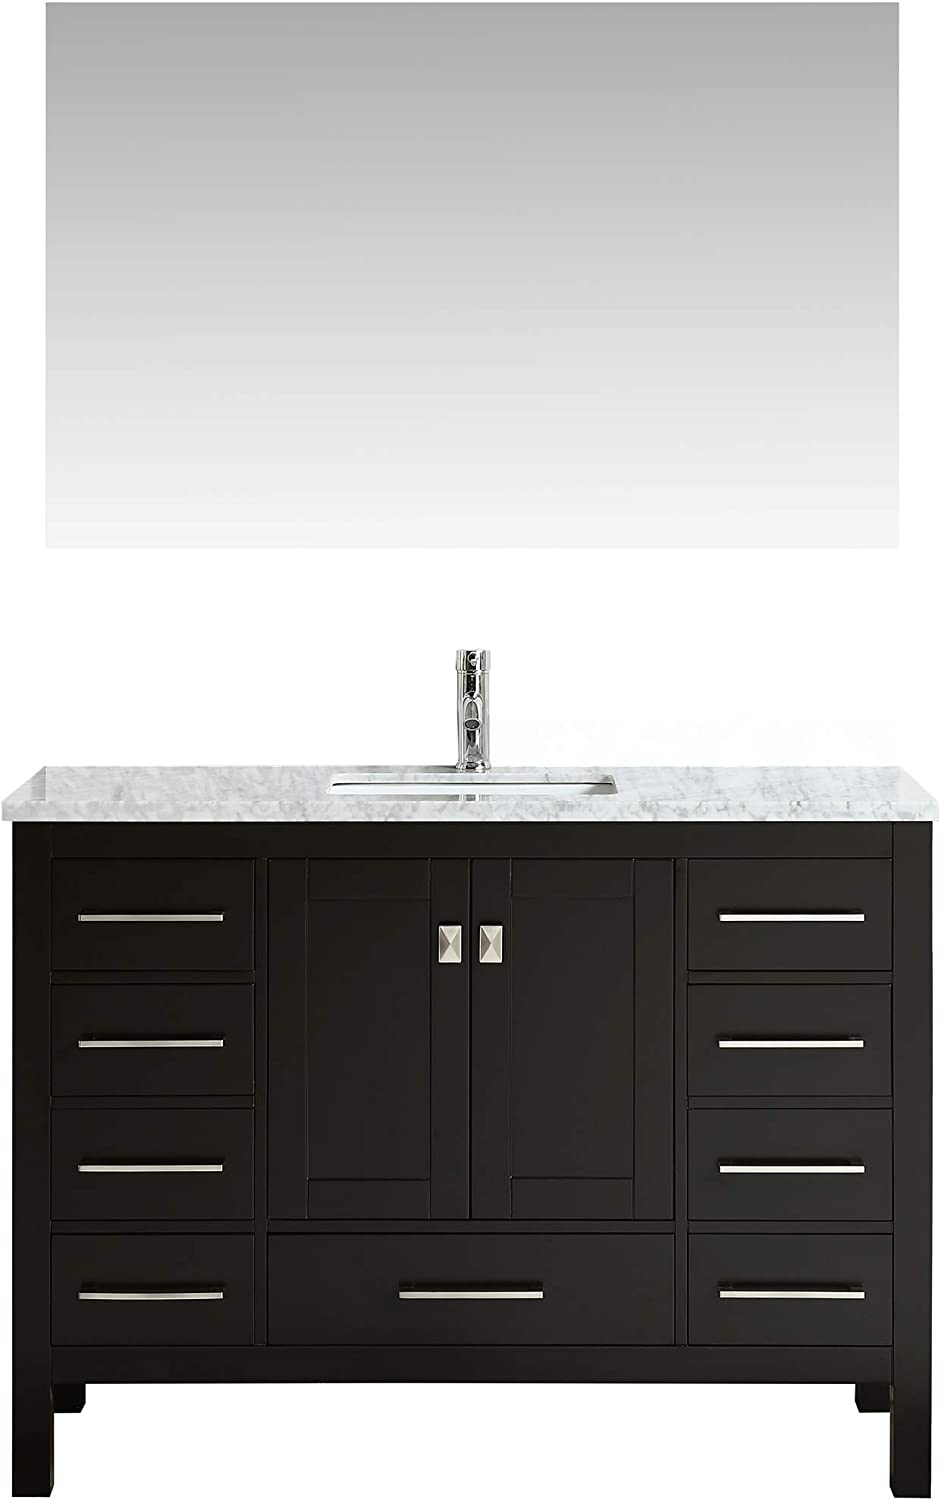 Eviva EVVN412-48ES Aberdeen 48 Transitional Espresso Bathroom Vanity with White Carrera Countertop, Backsplash Isn t Included Combination,